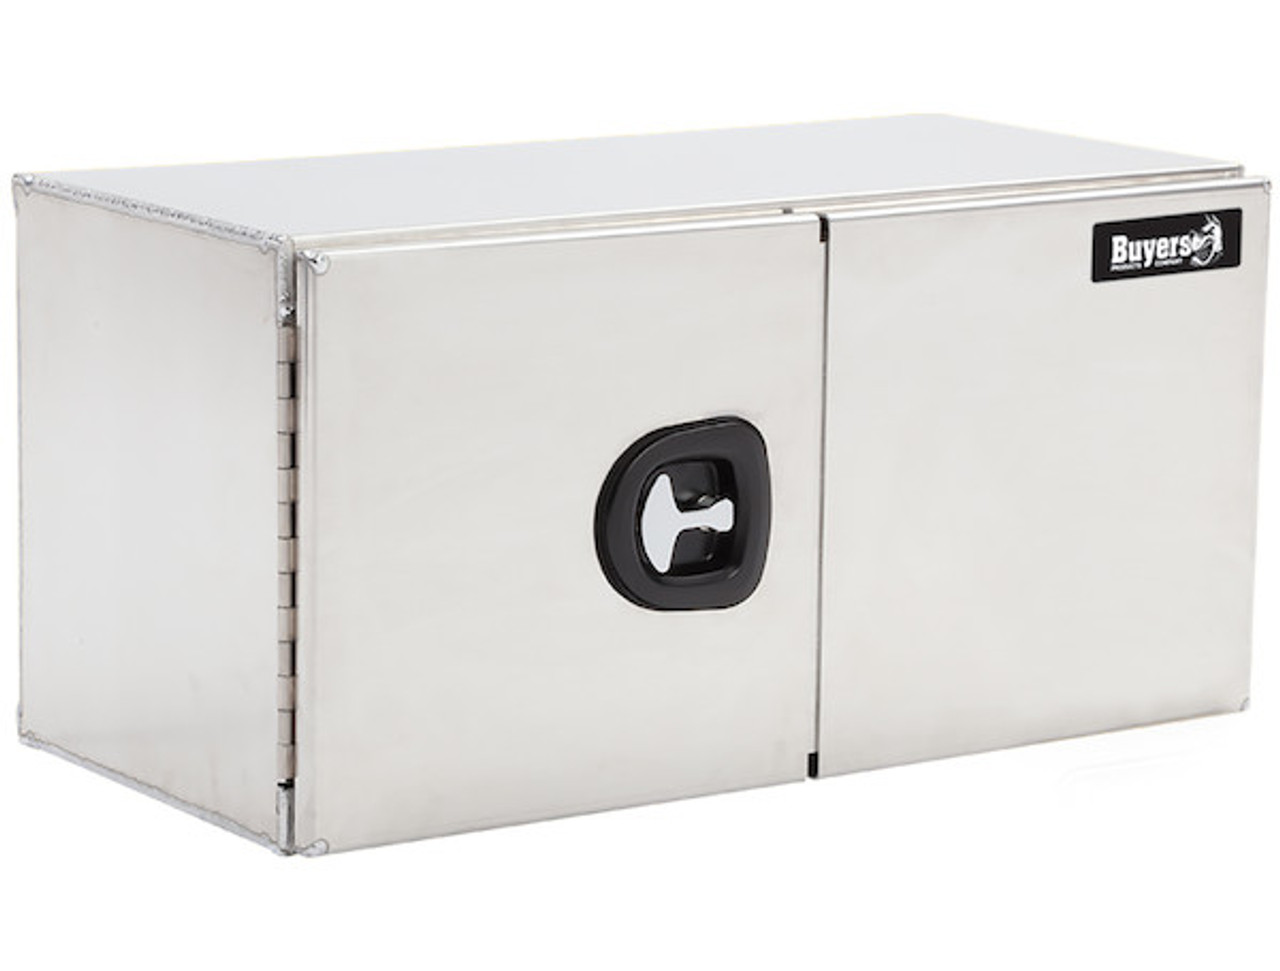 """1705345 BUYERS PRODUCTS SMOOTH ALUMINUM UNDERBODY TOOLBOX WITH BARN DOOR 24""""HX24""""DX60""""W"""